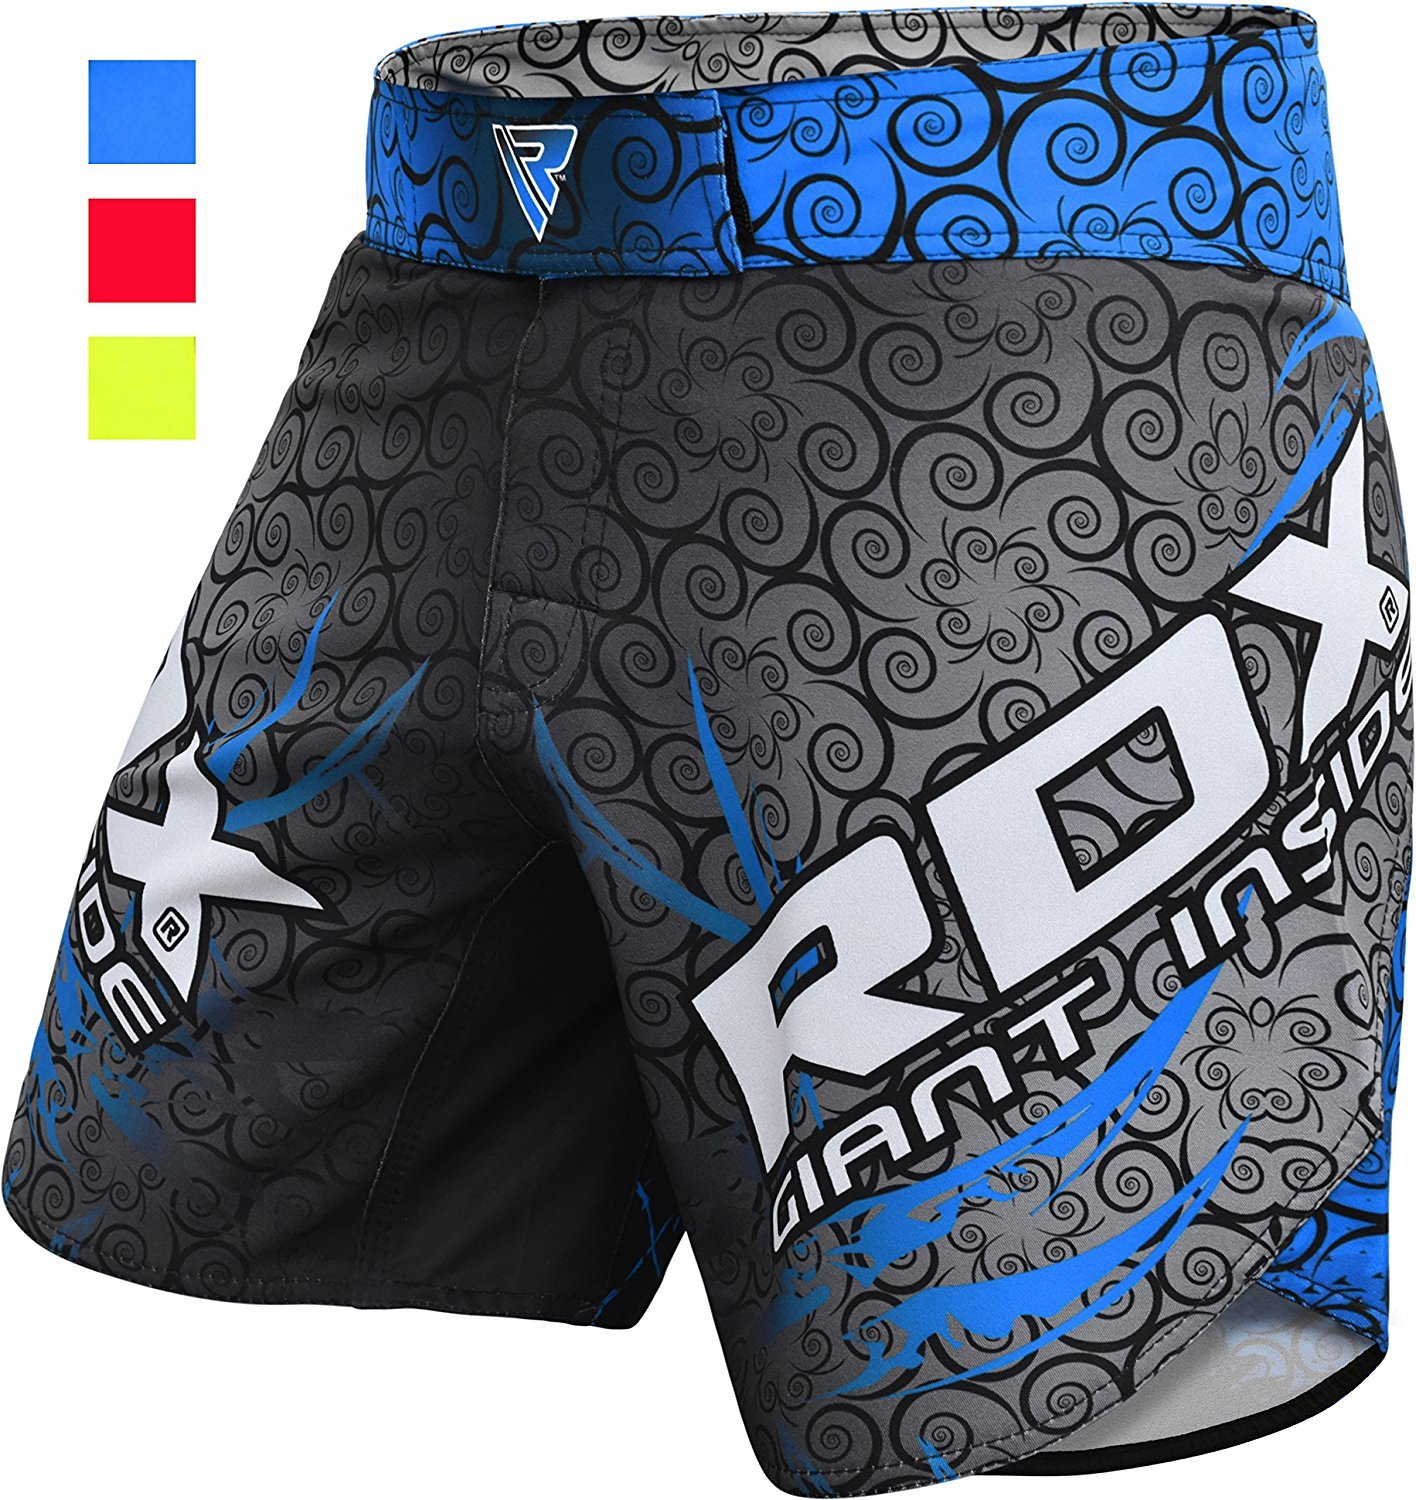 RDX MMA Stretch Shorts Clothing Training Cage Fighting Grappling Martial Arts Muay Thai Kickboxing